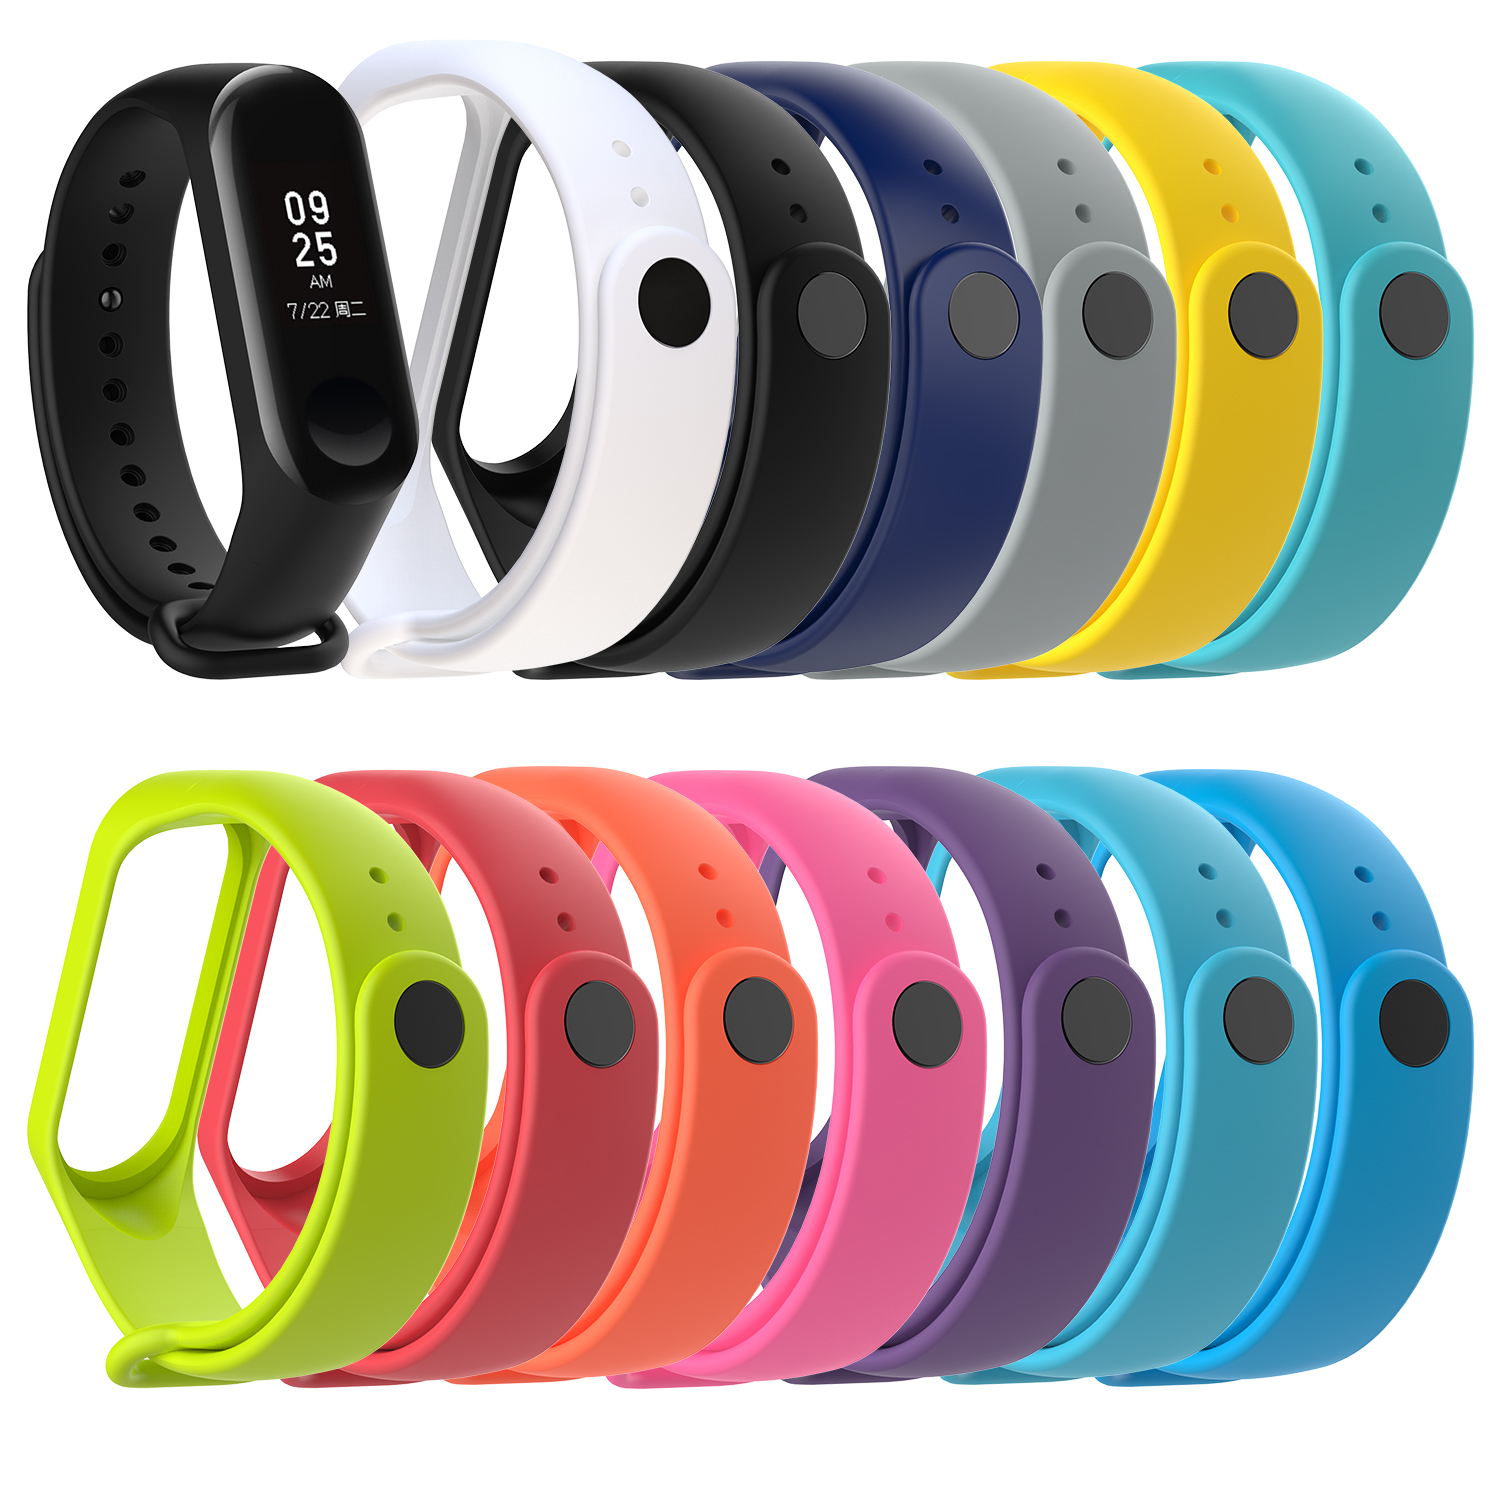 Newest Millet Silica Bracelet 3 4 Wristband Smart Sports Bracelet Replacement For Xiaomi Mi Band 4 3 Wristband Fitness Watch